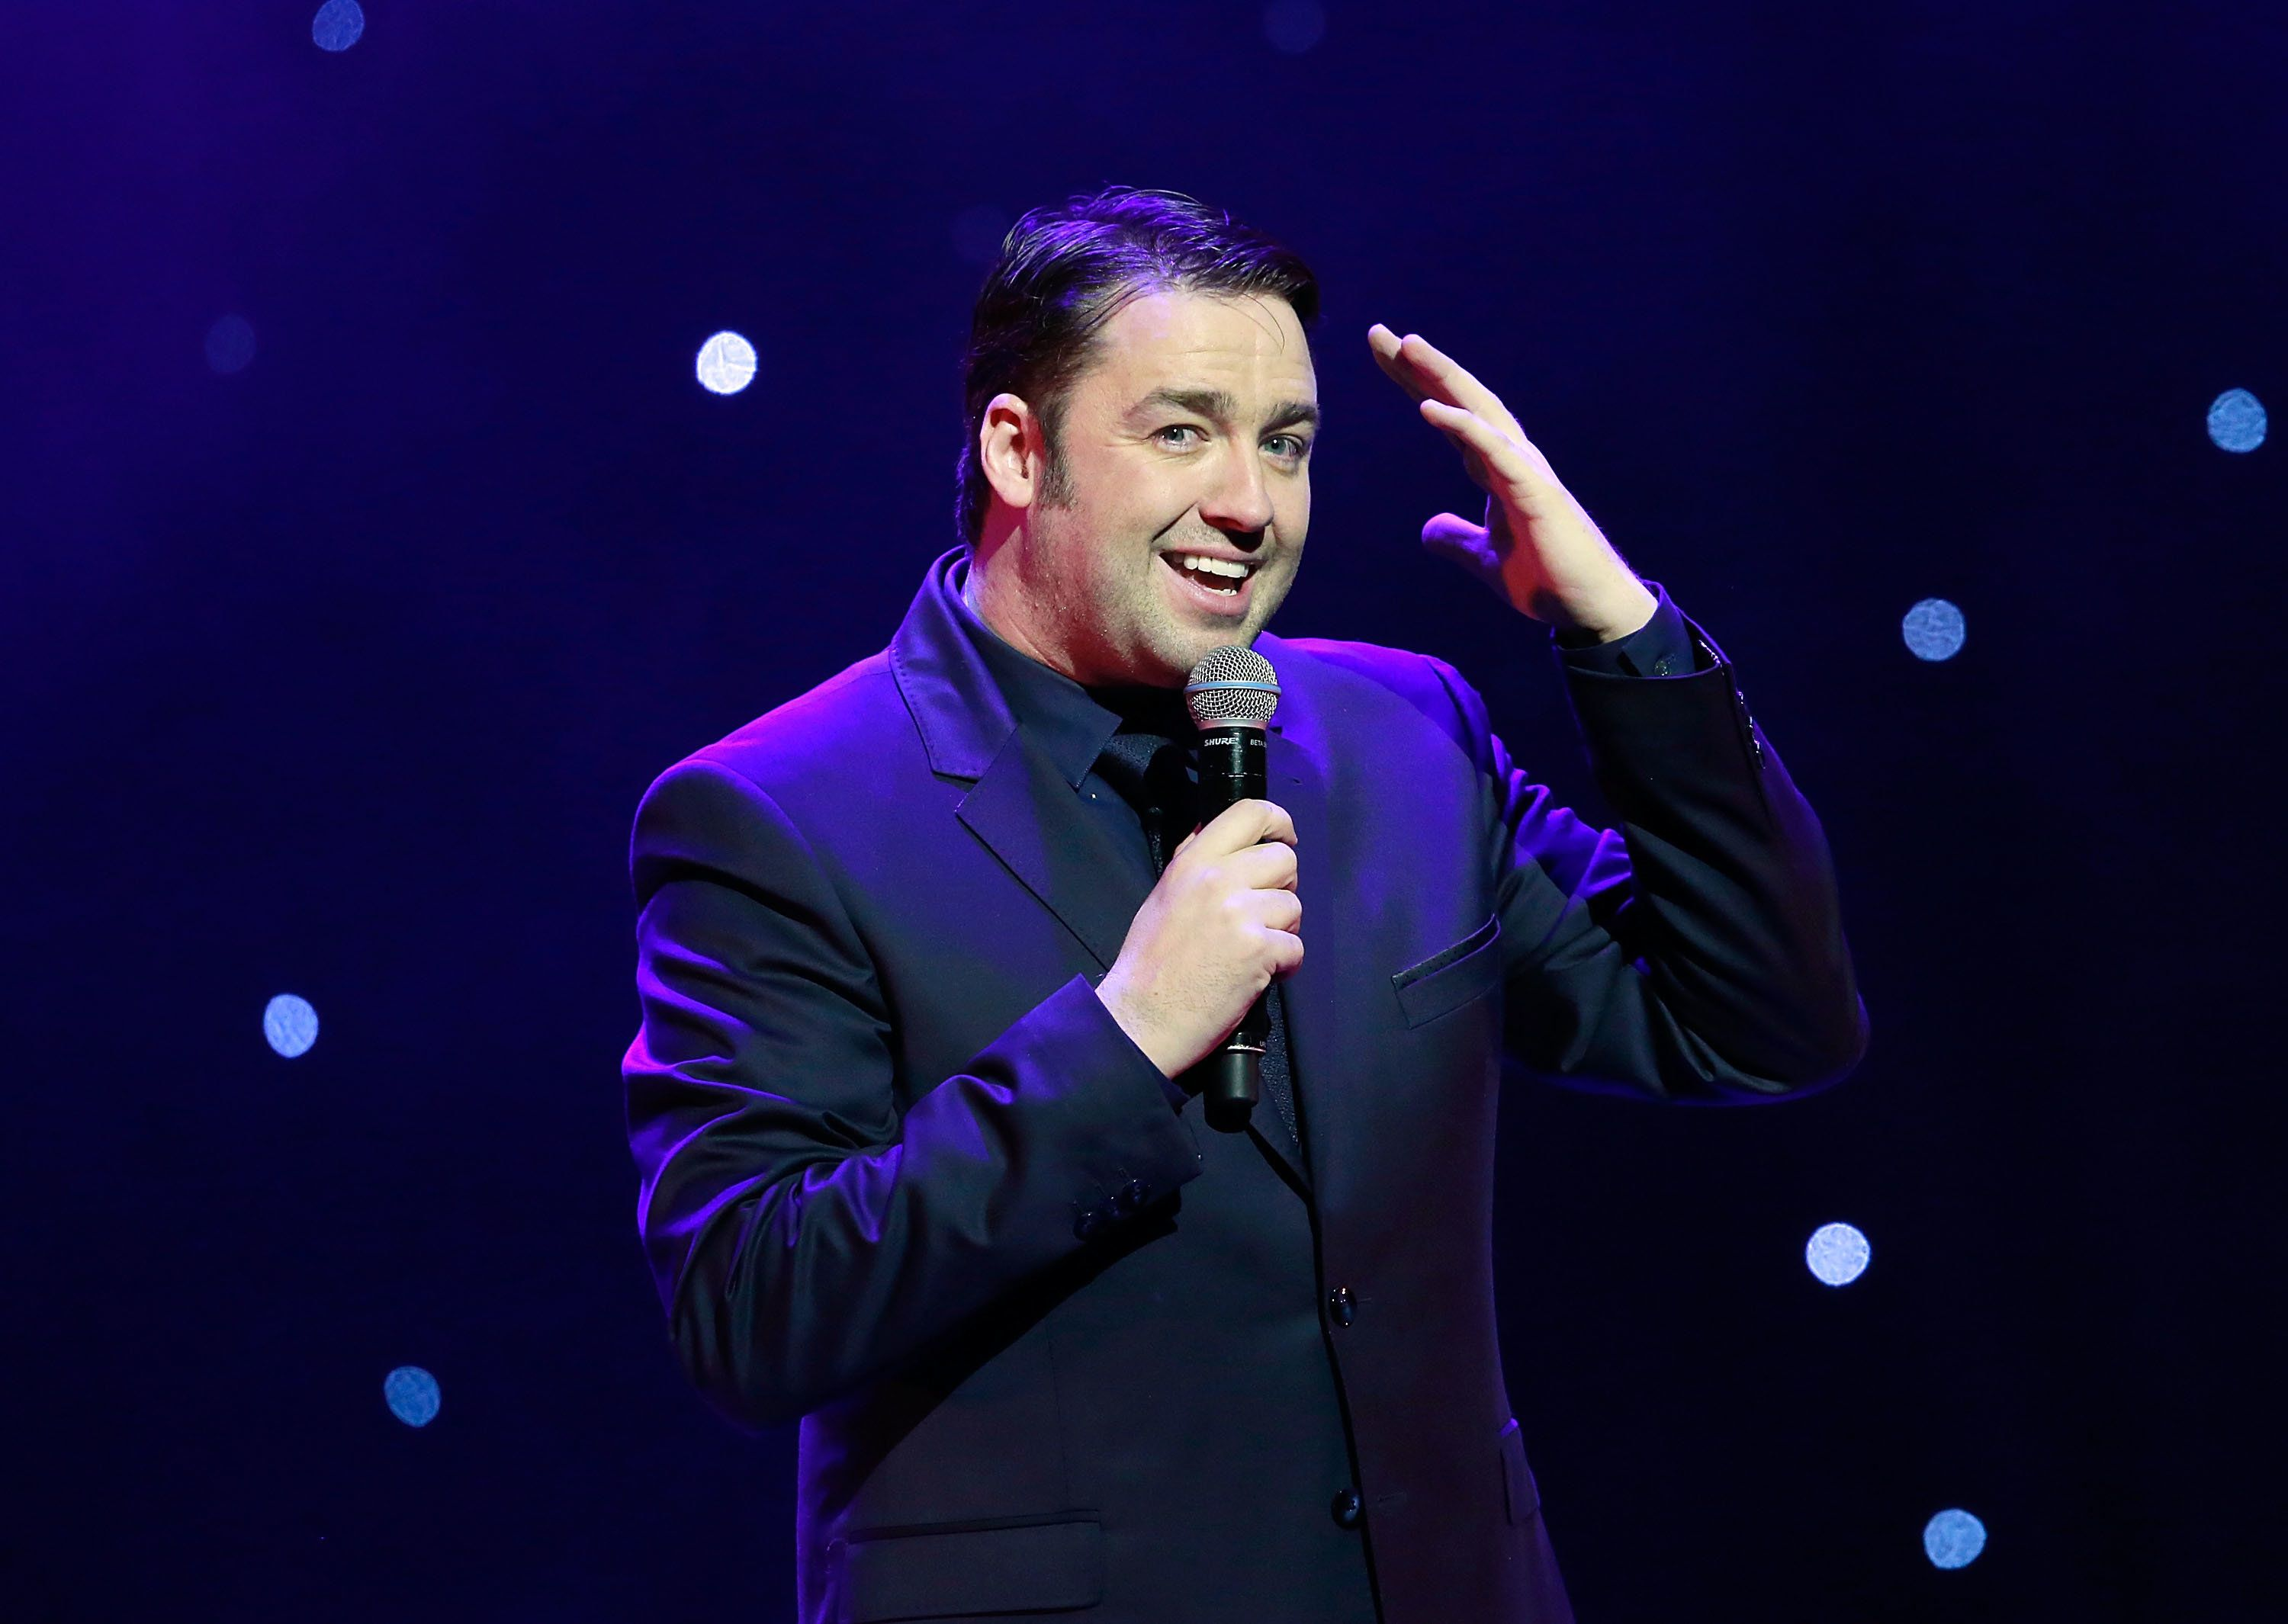 Jason Manford Is The Latest Unlikely Celebrity Releasing A Covers